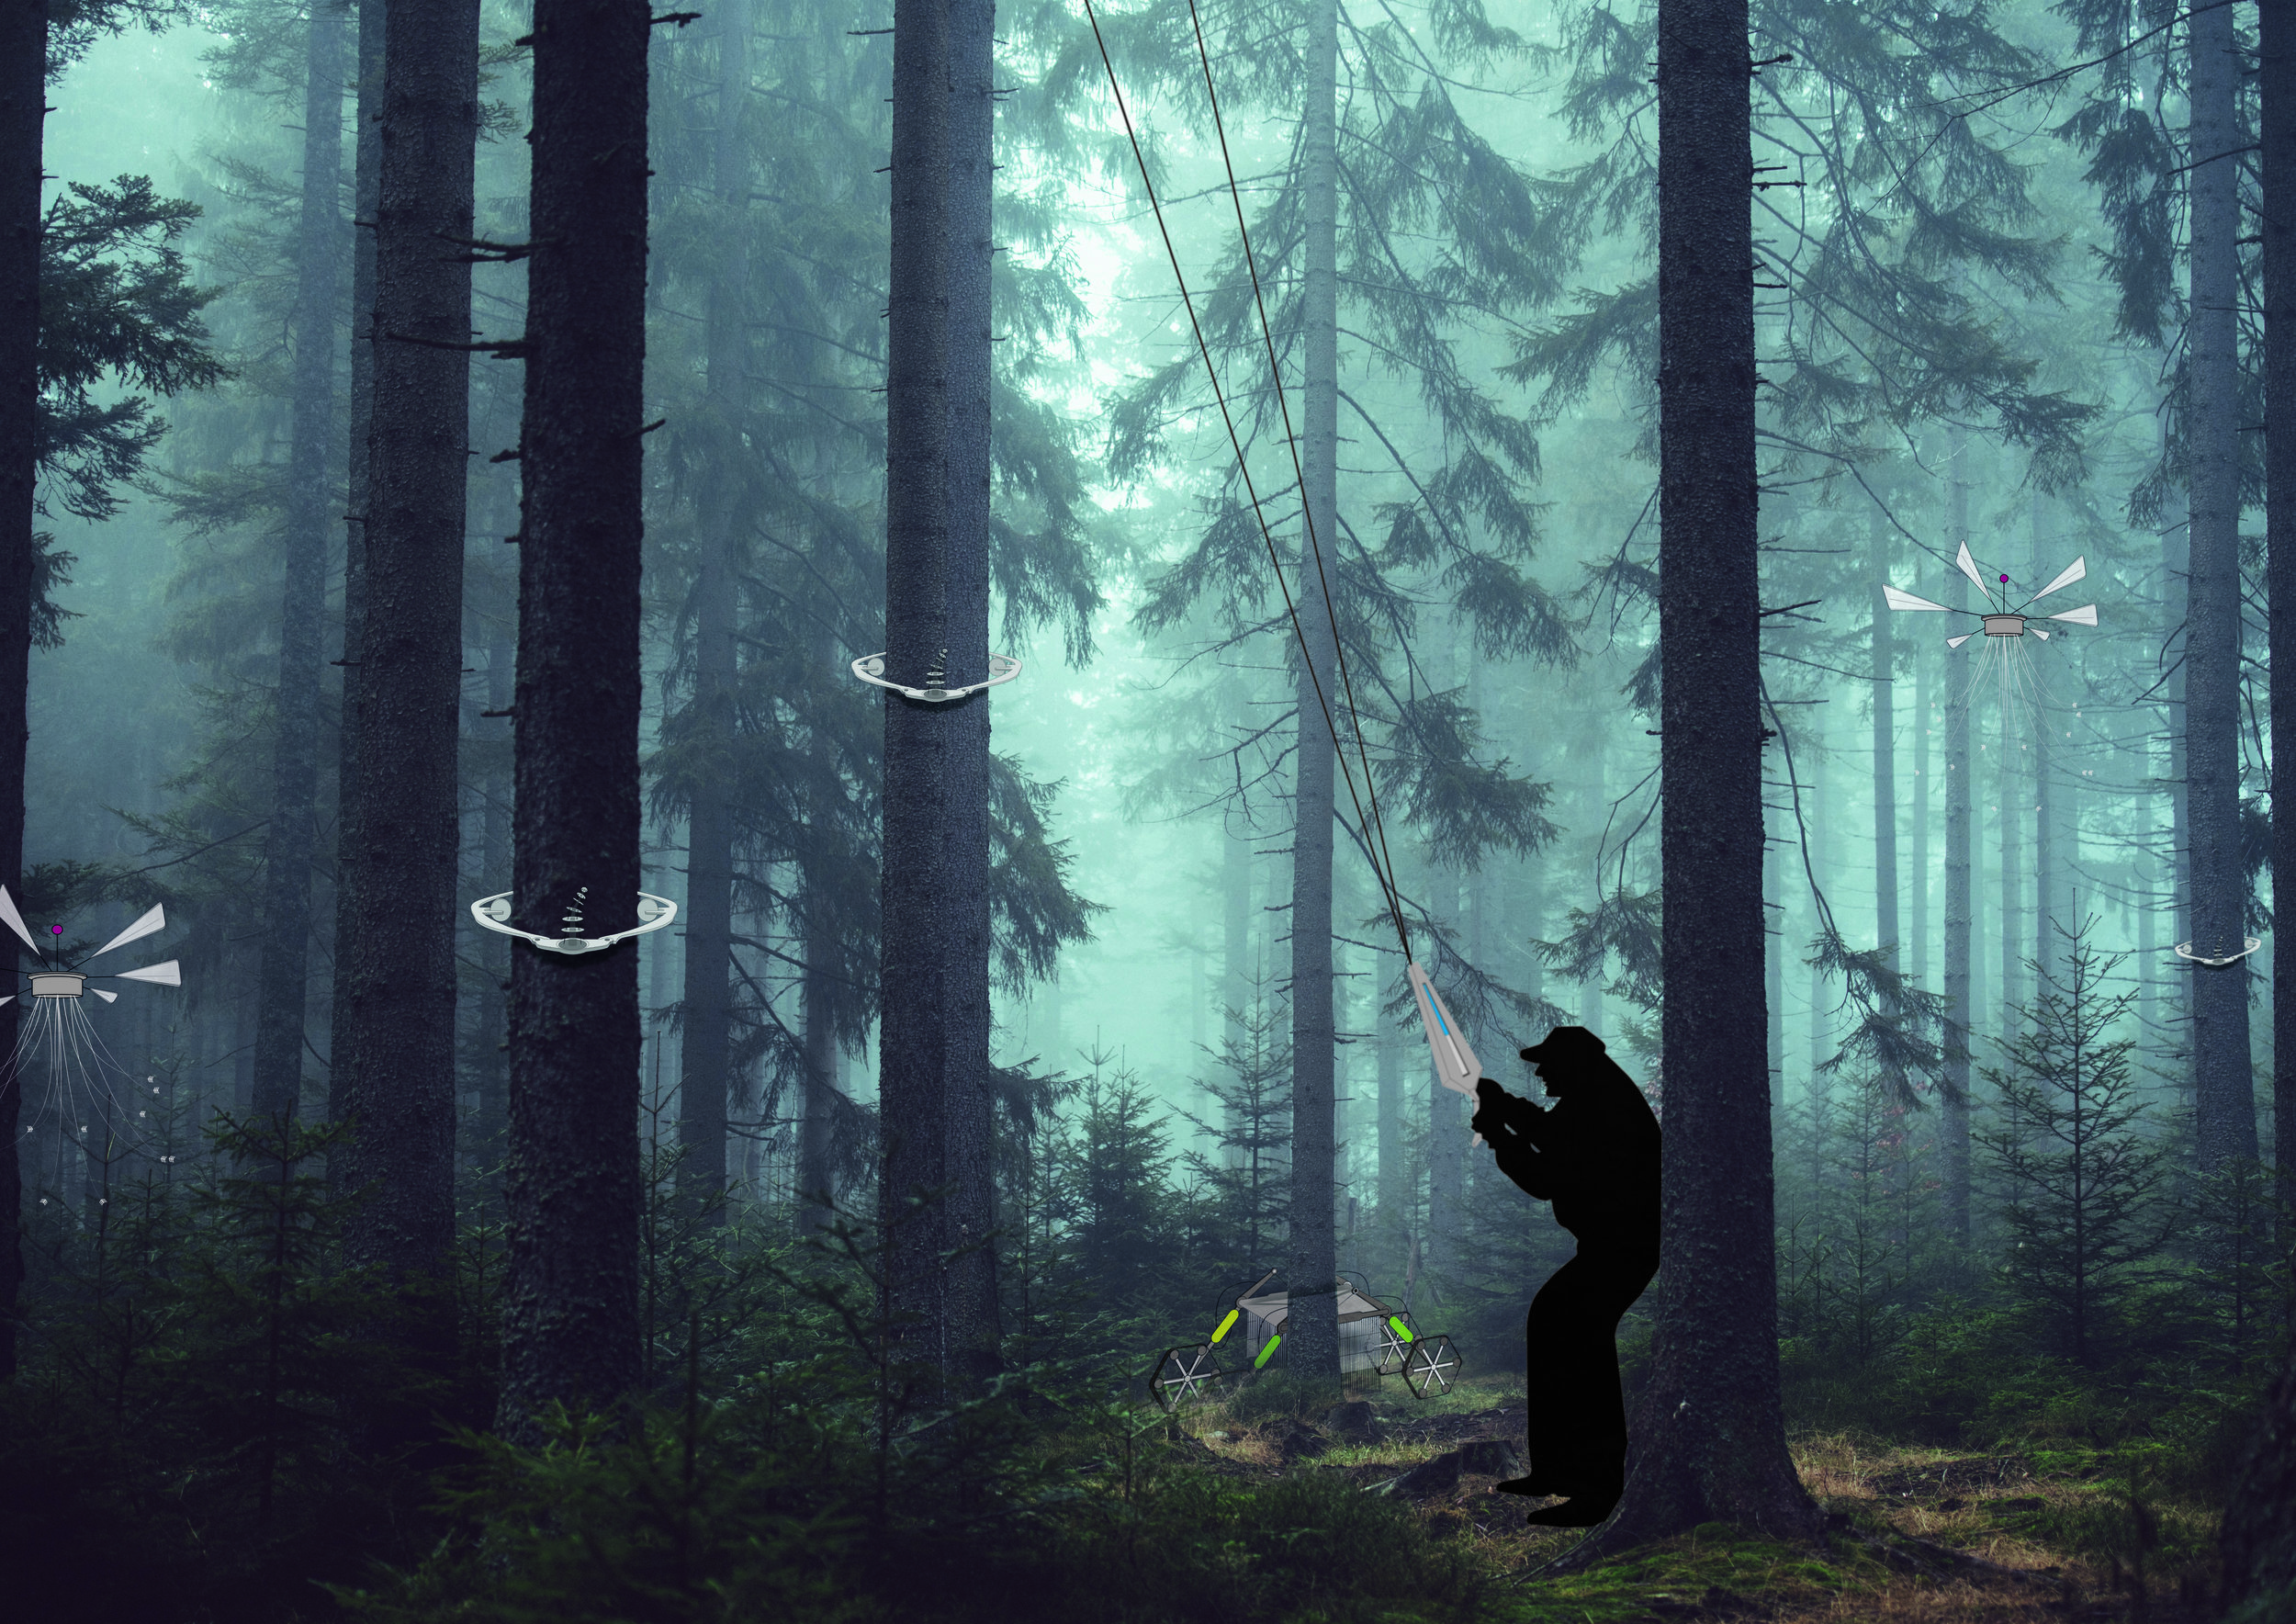 TECHNOLOGICAL INVENTIONS AS FOREST GUARDS